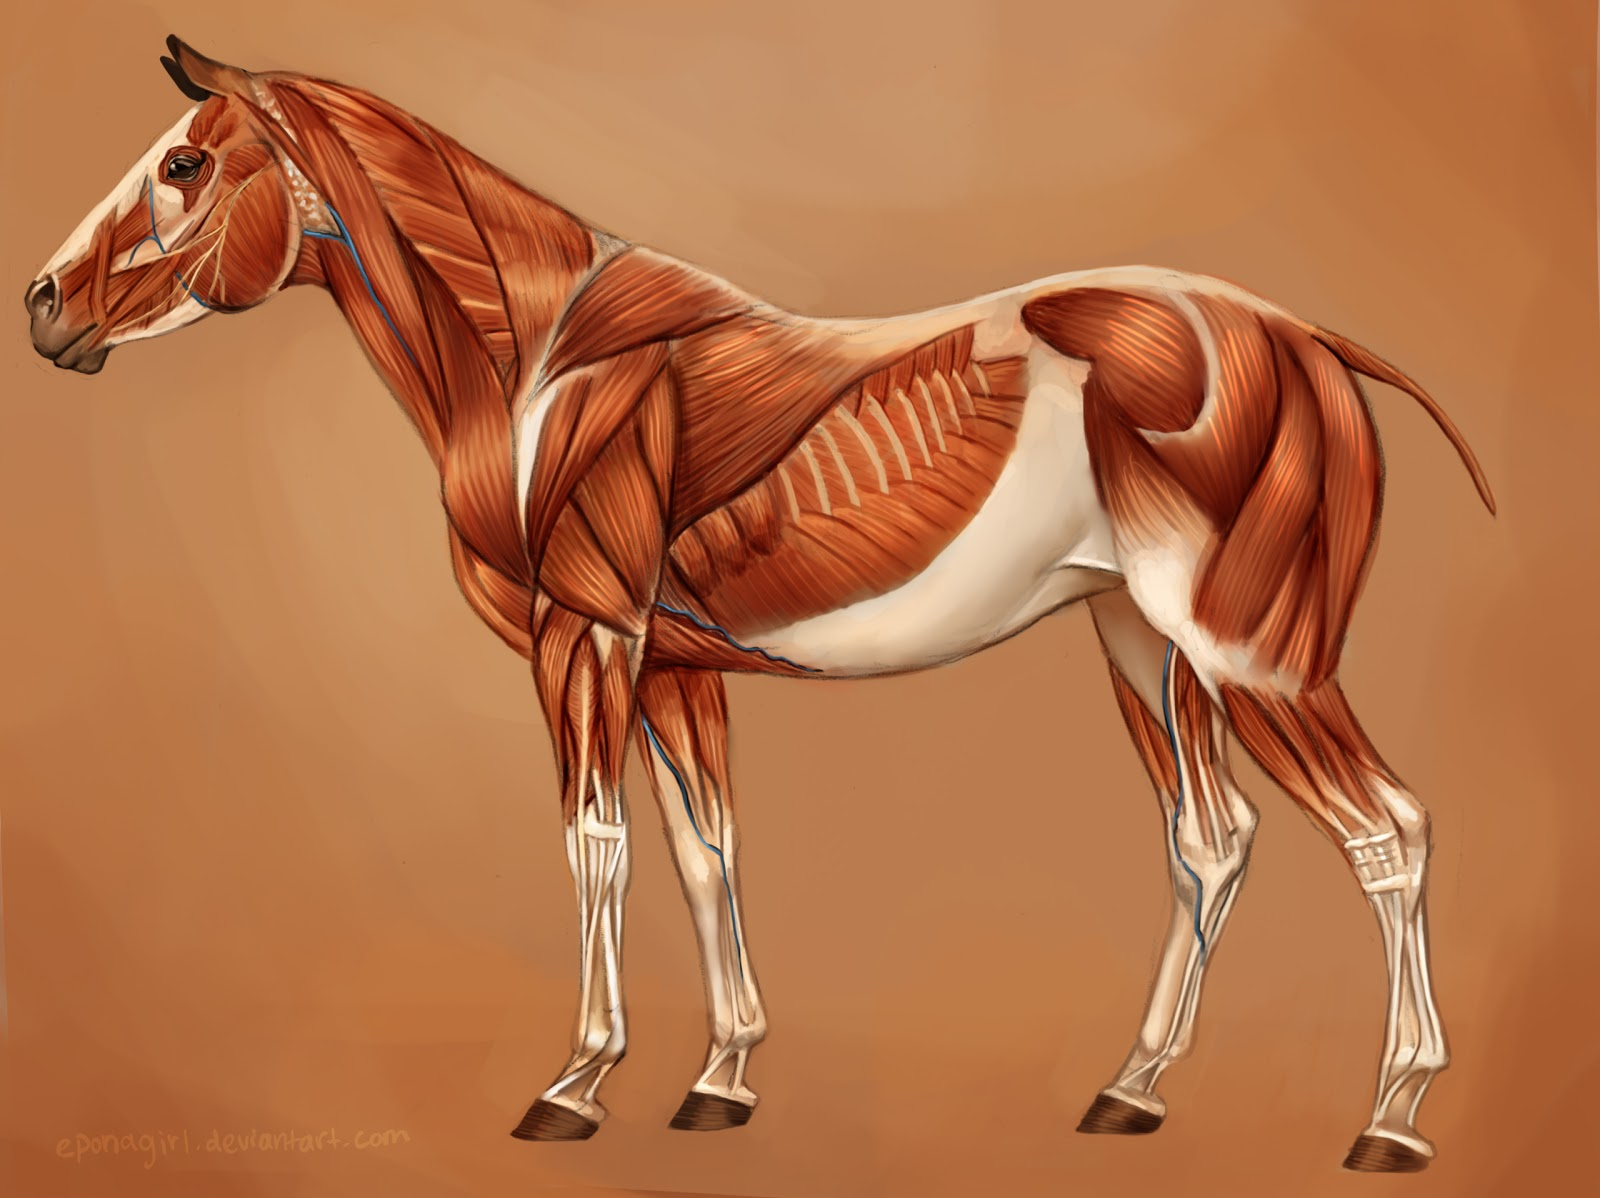 Horse+Muscles-color.jpg